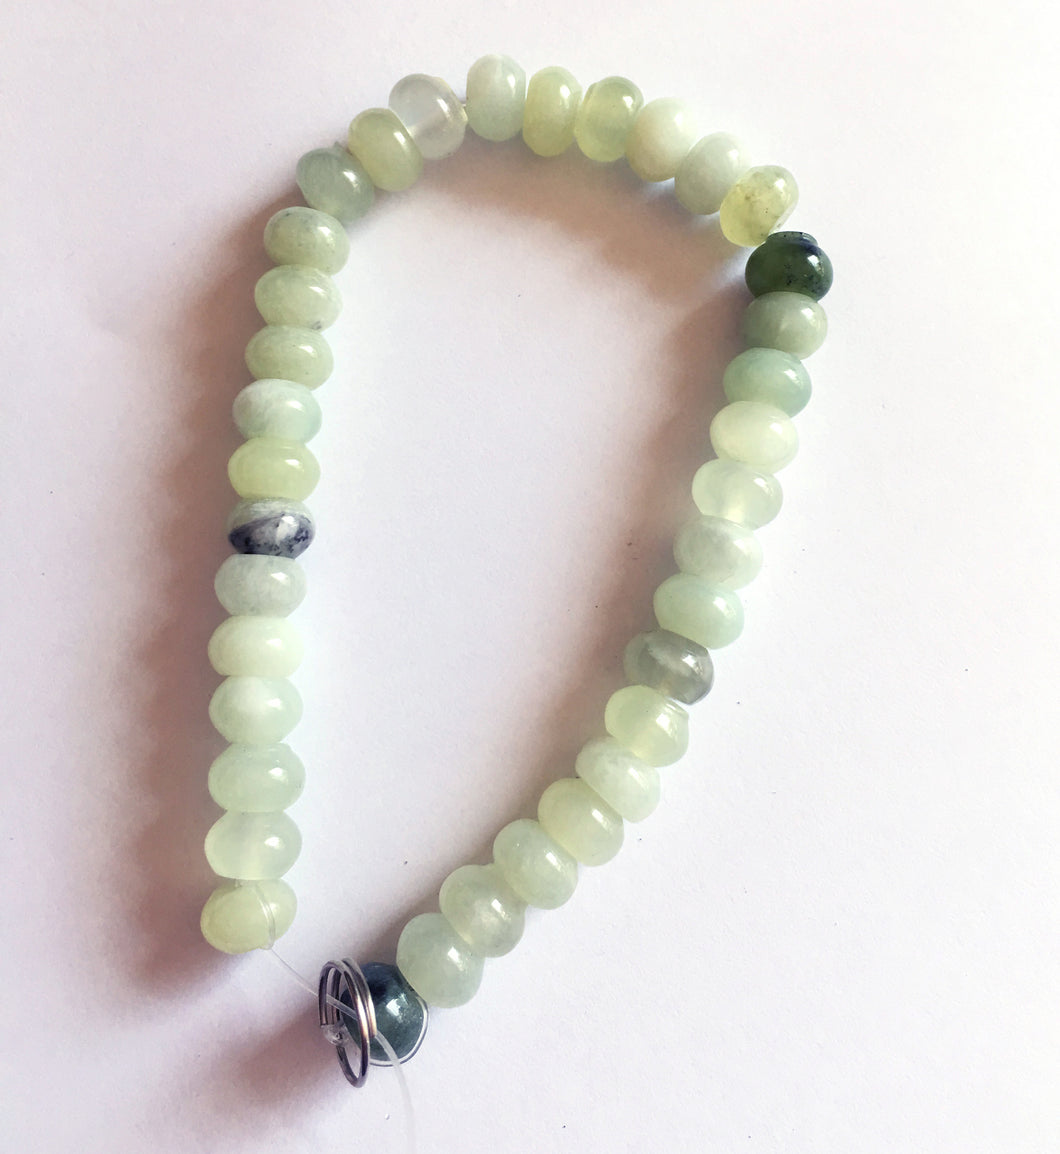 Green Serpentine Beads 8 inch strand of 8mm rondelles